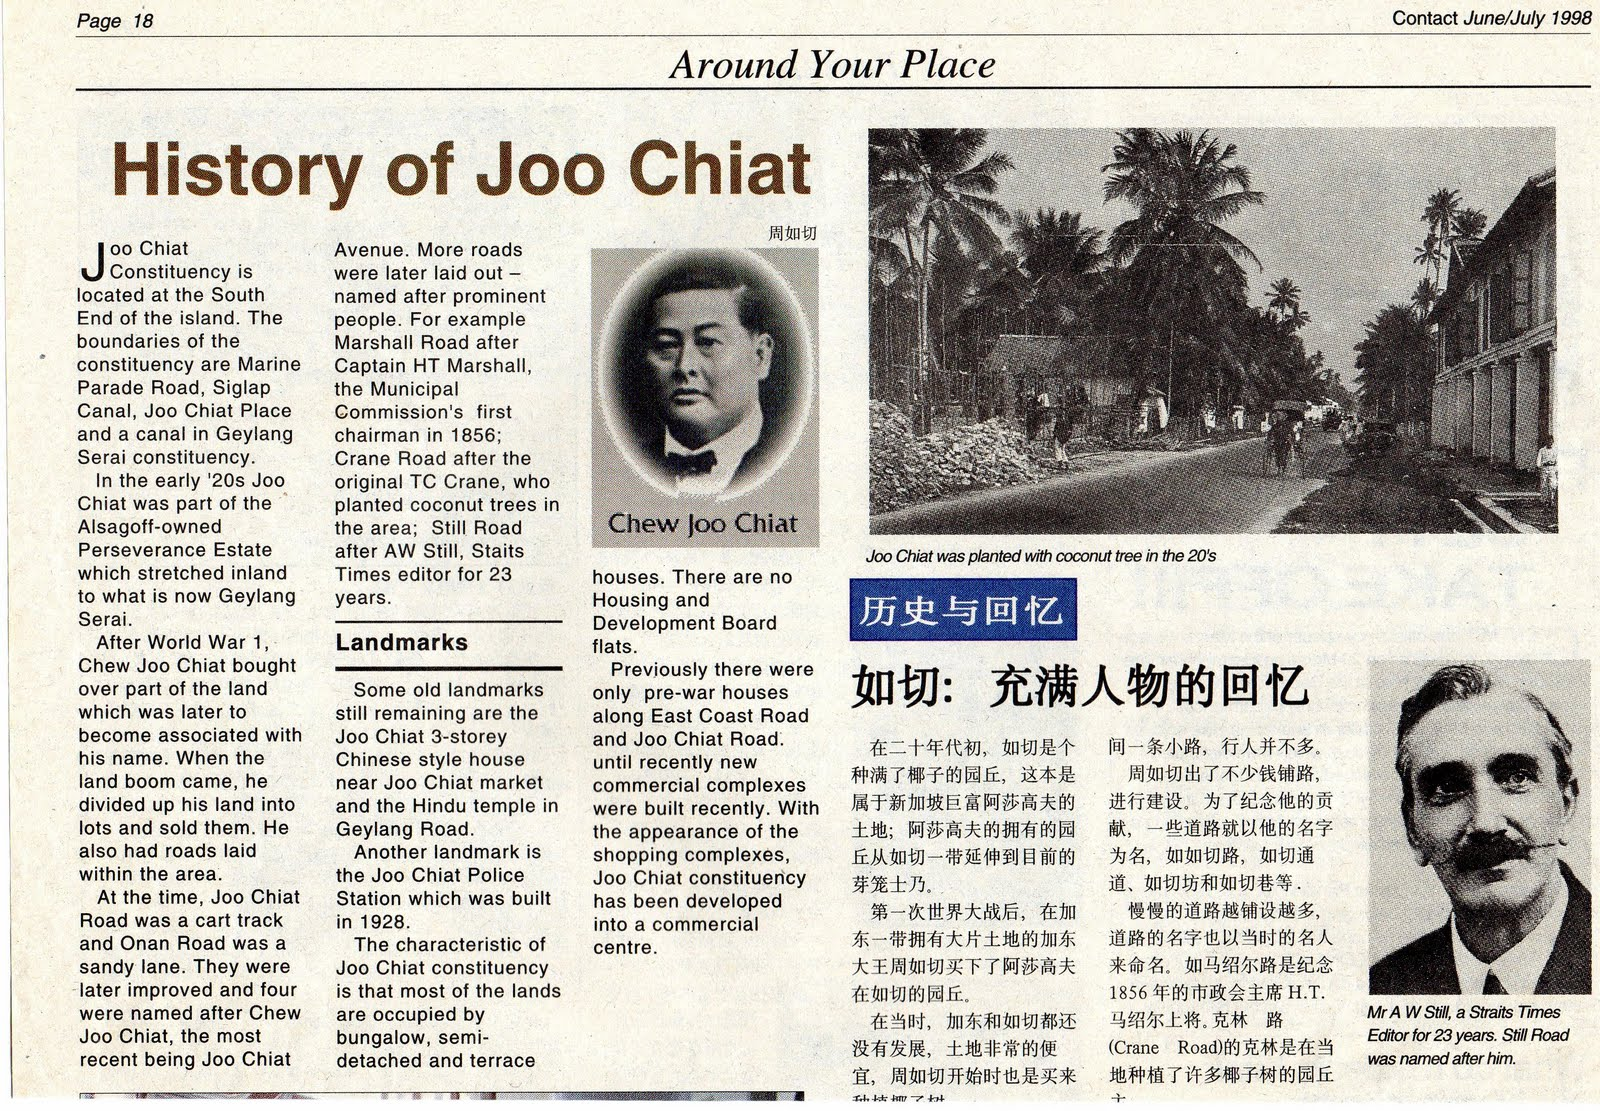 history-of-joo-chiat